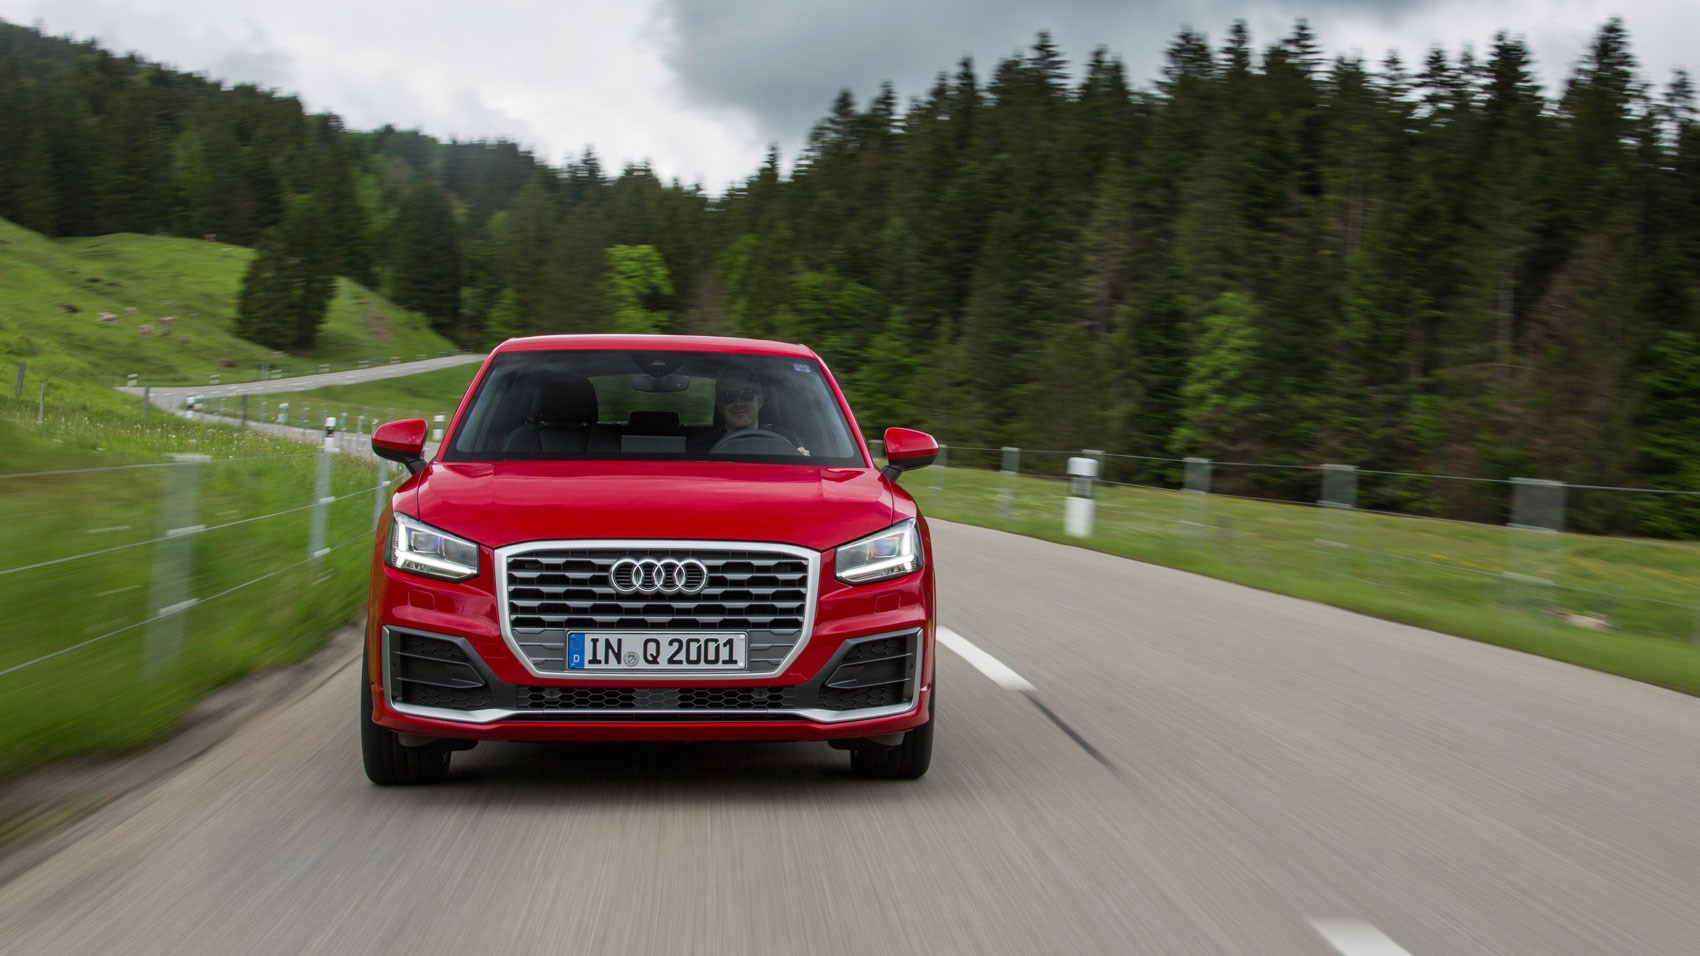 Audi q2 16 tdi sport 2016 review by car magazine the 16 tdi is quiet and offers sufficient punch in audi q2 sciox Image collections